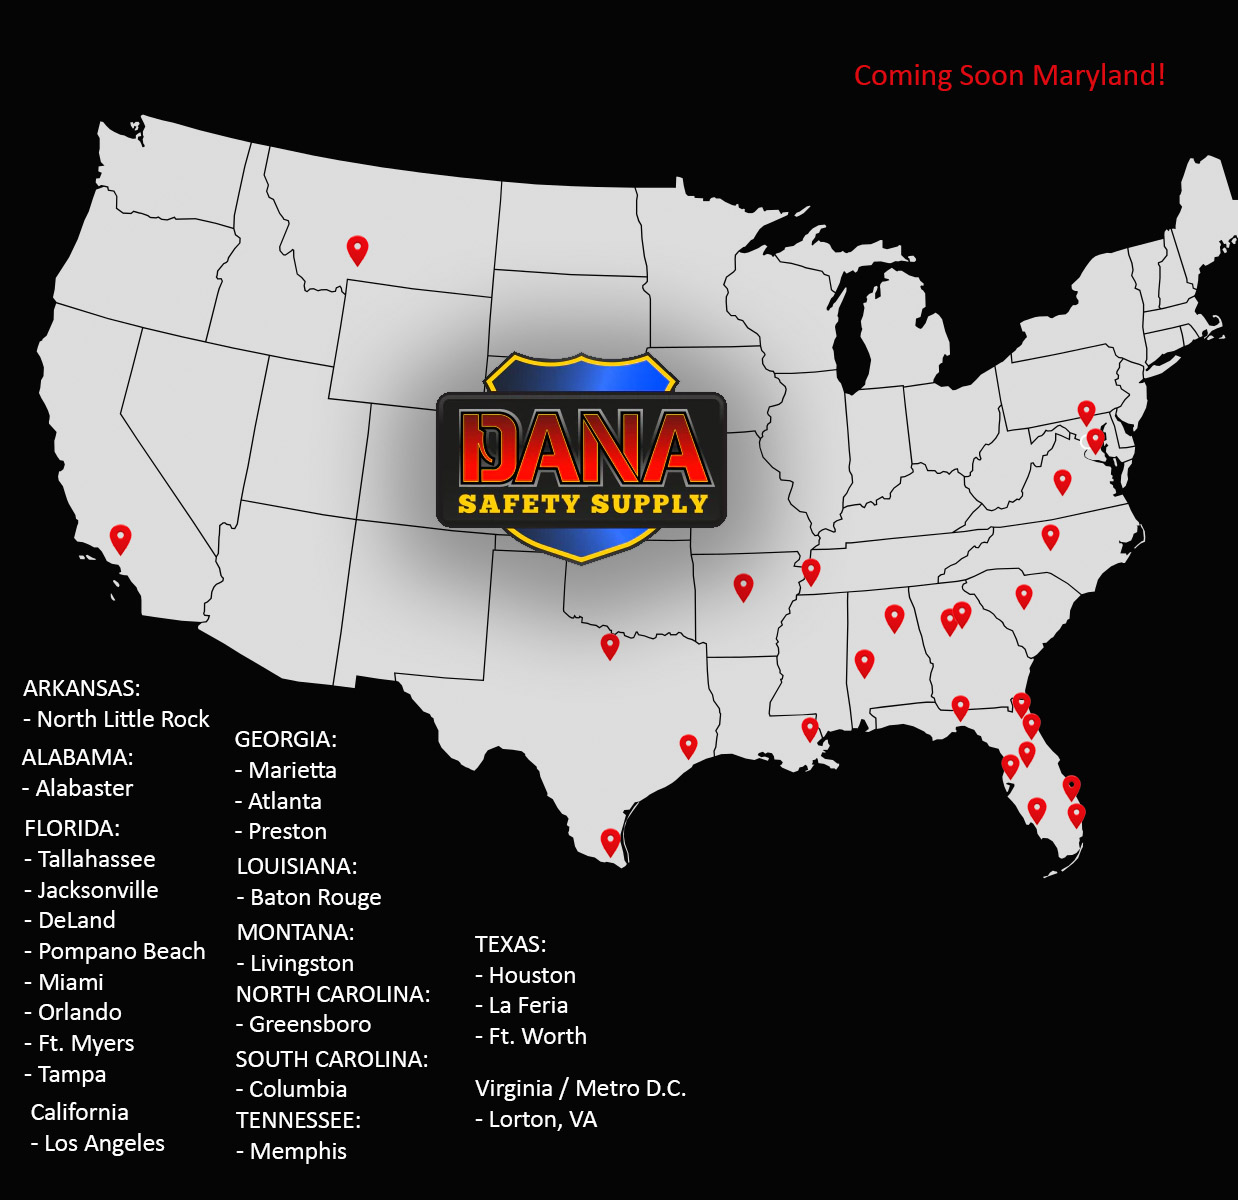 map-of-dss-2019-8-12-added-canoga-and-preston.jpg